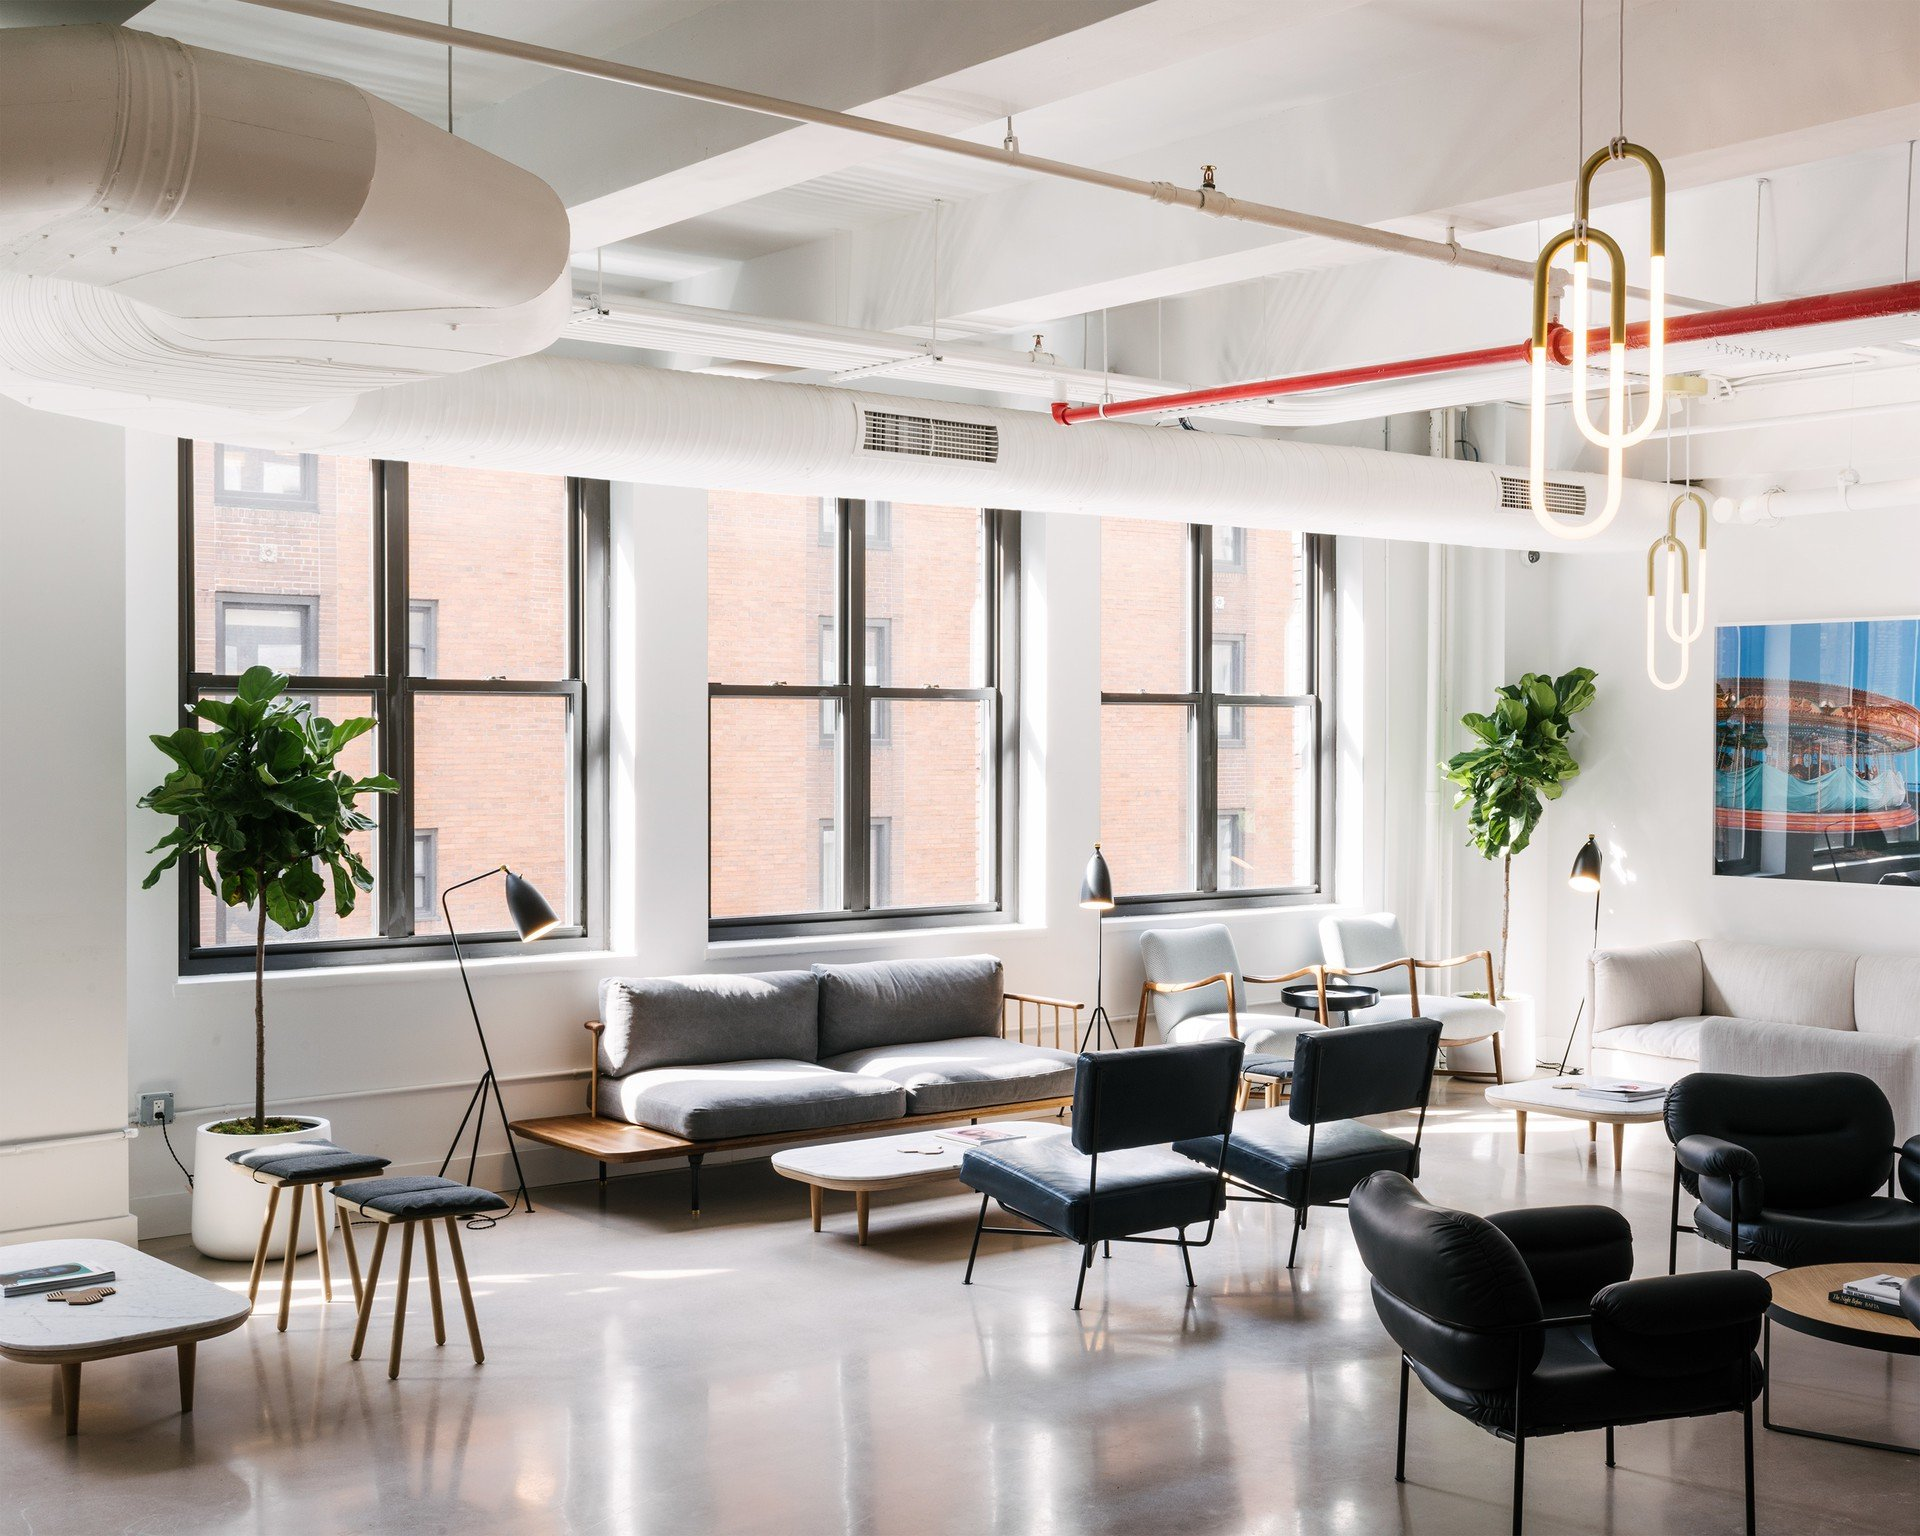 NYC corporate event venues Cafe Blender image 5